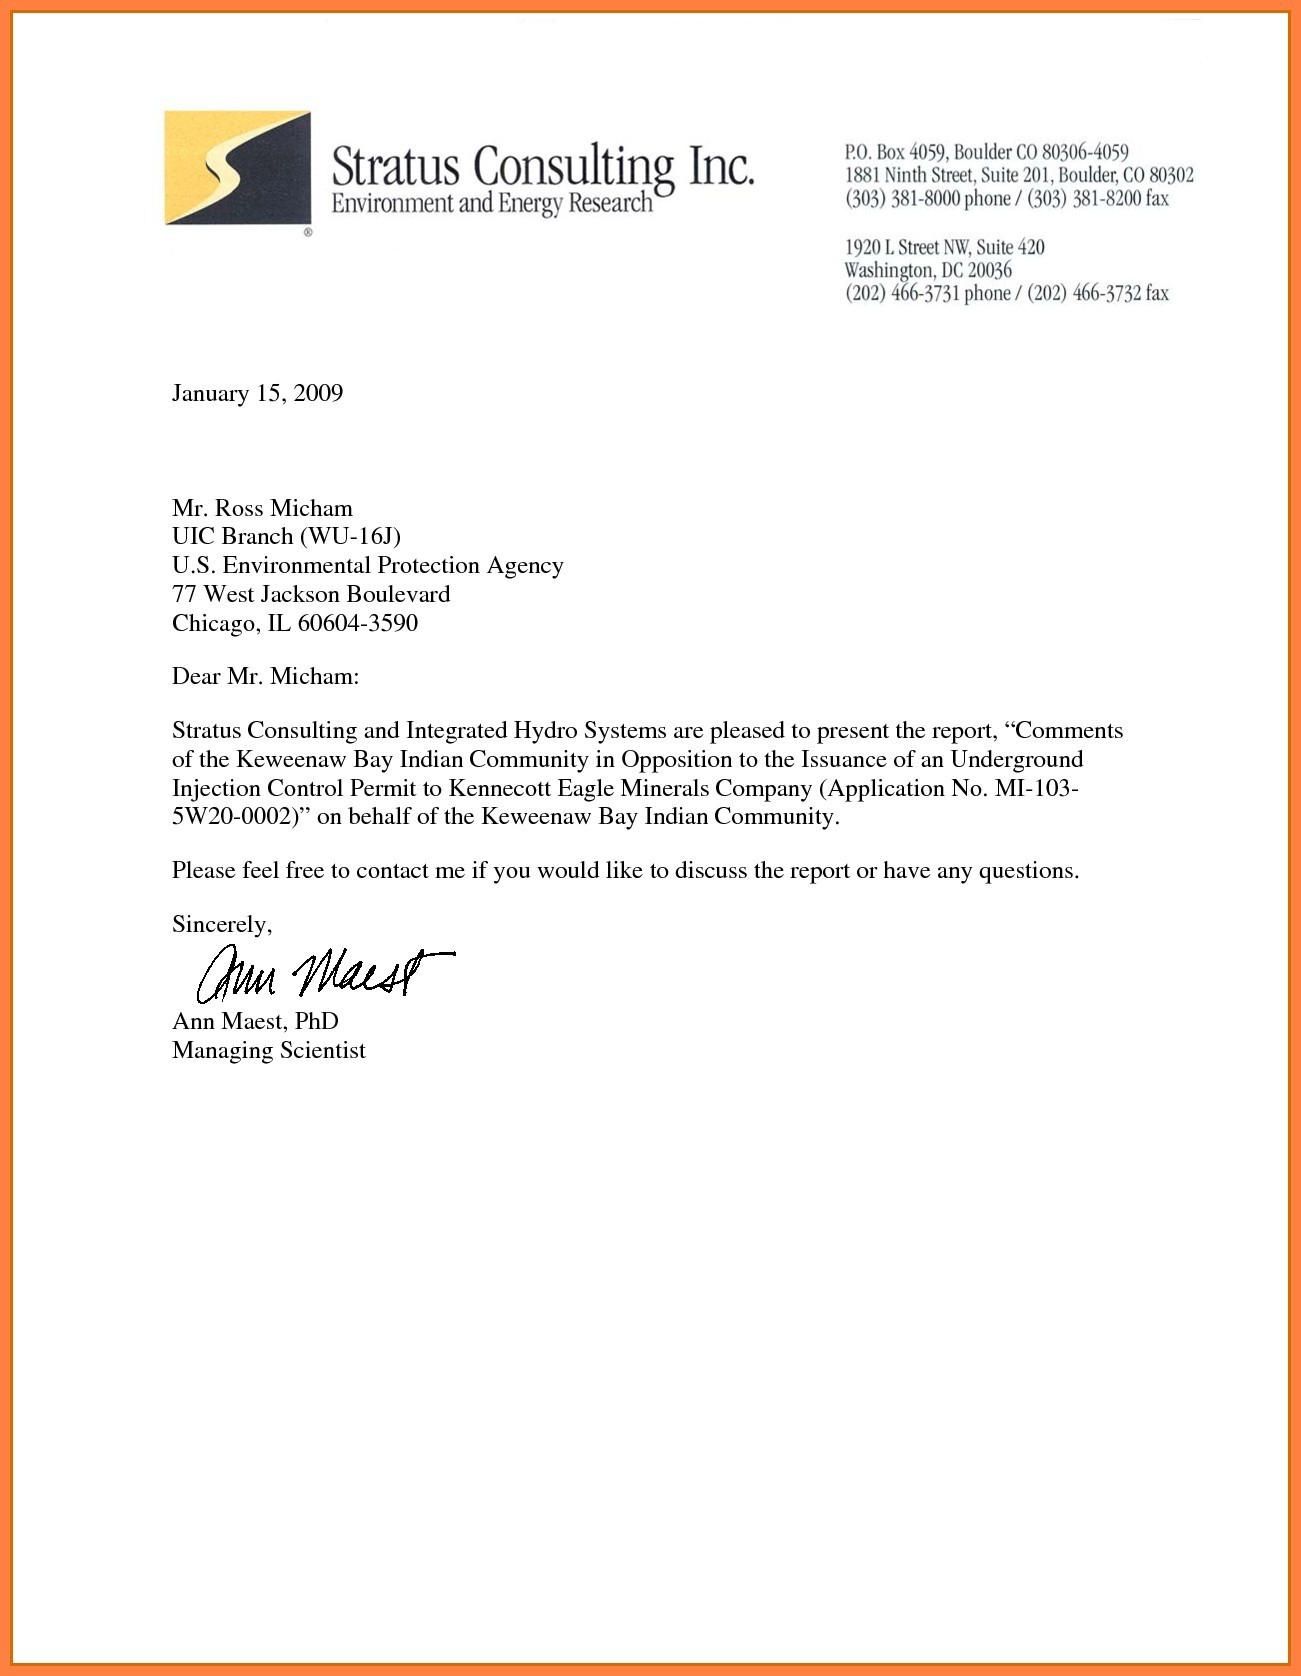 professional letter heading template Collection-Professional Letterhead Template Word Copy 10-a